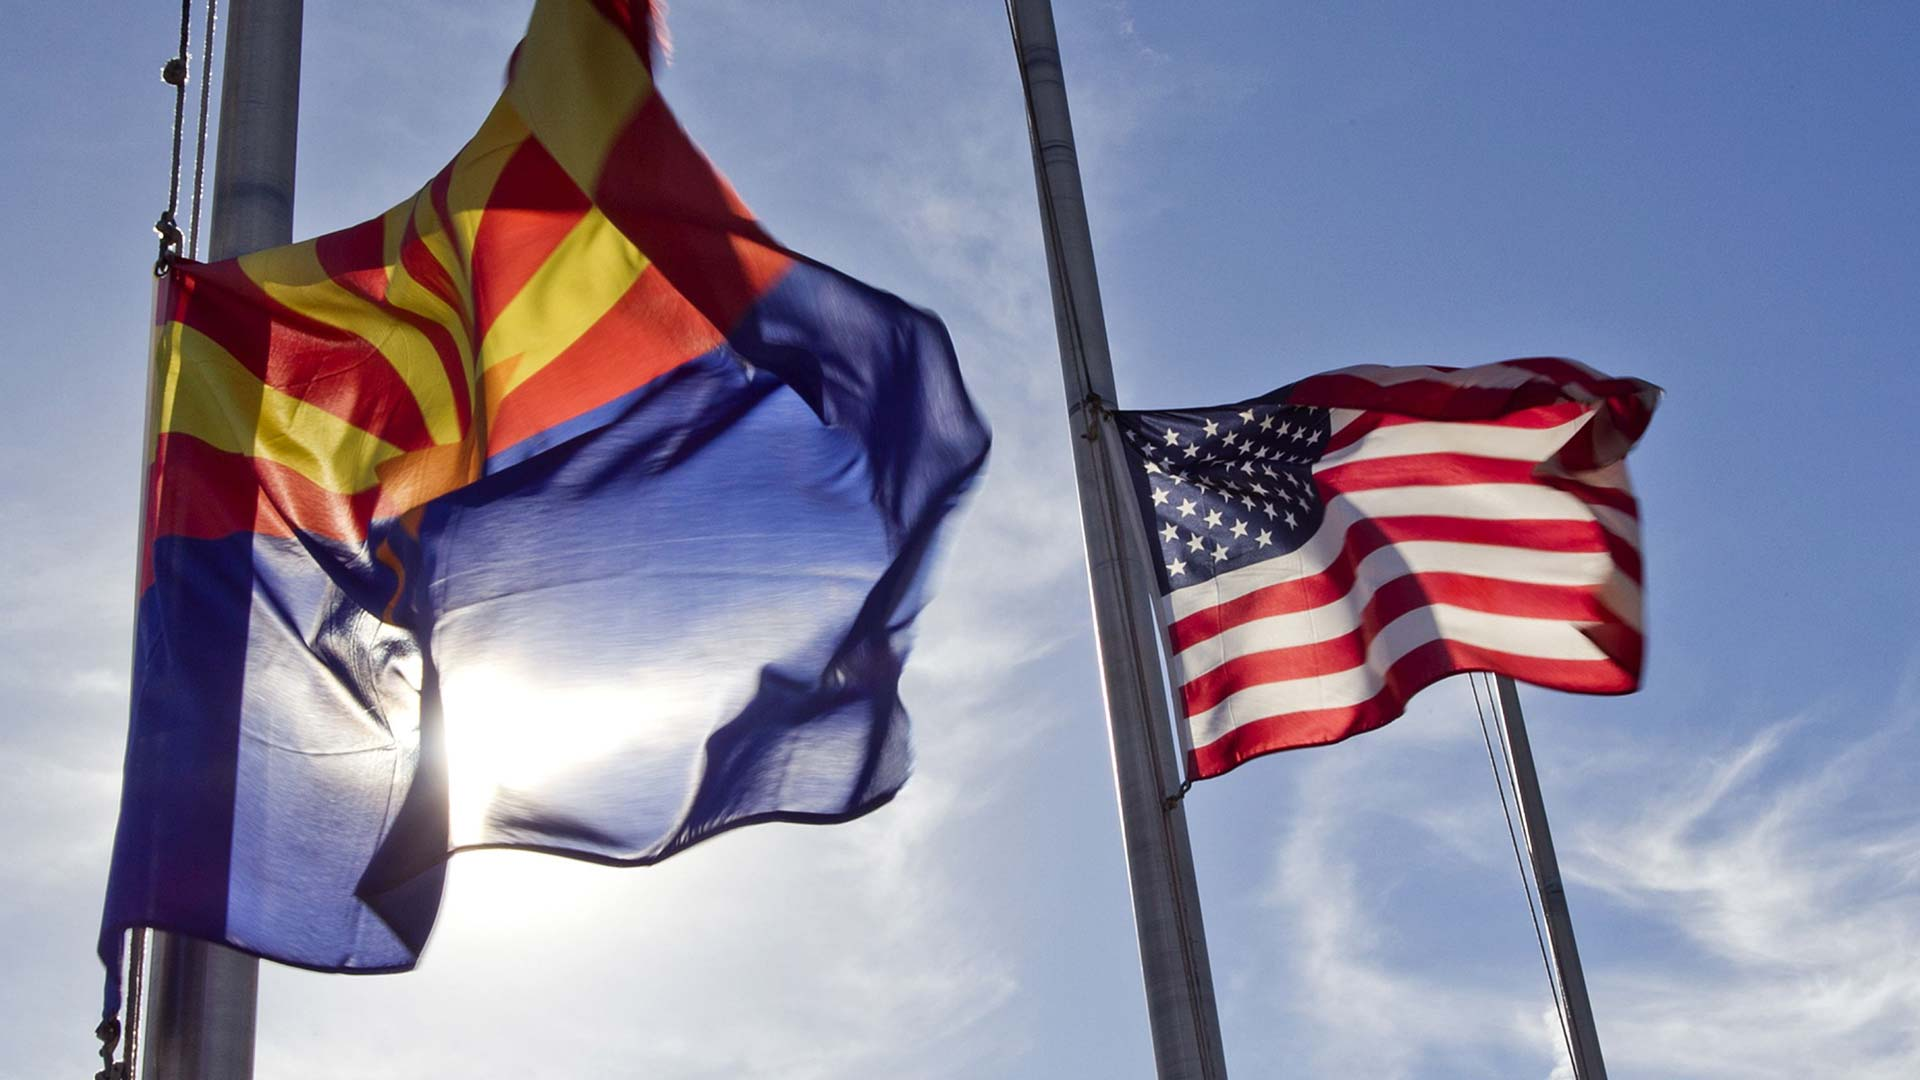 Gov. Doug Ducey ordered flags to be lowered to half-staff following the death of police officer Clayton Townsend.